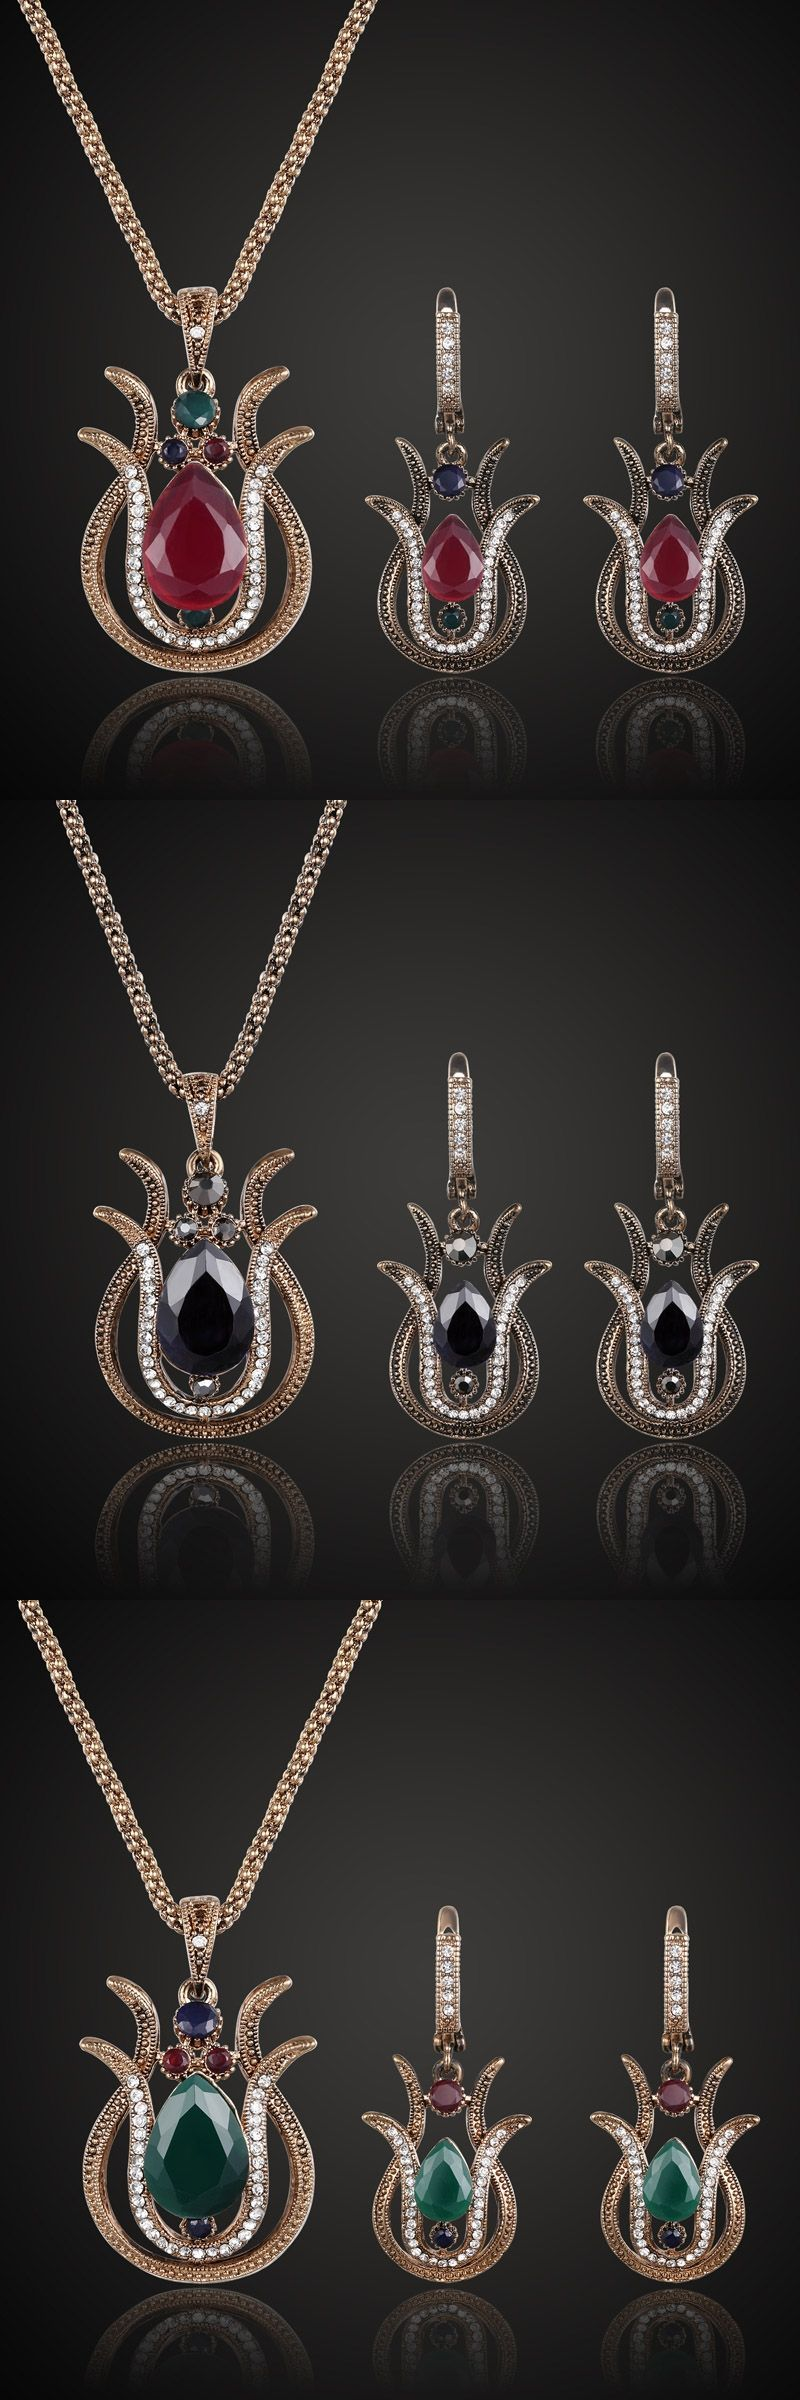 Supper turkish vintage jewelry sets fine women resin necklace